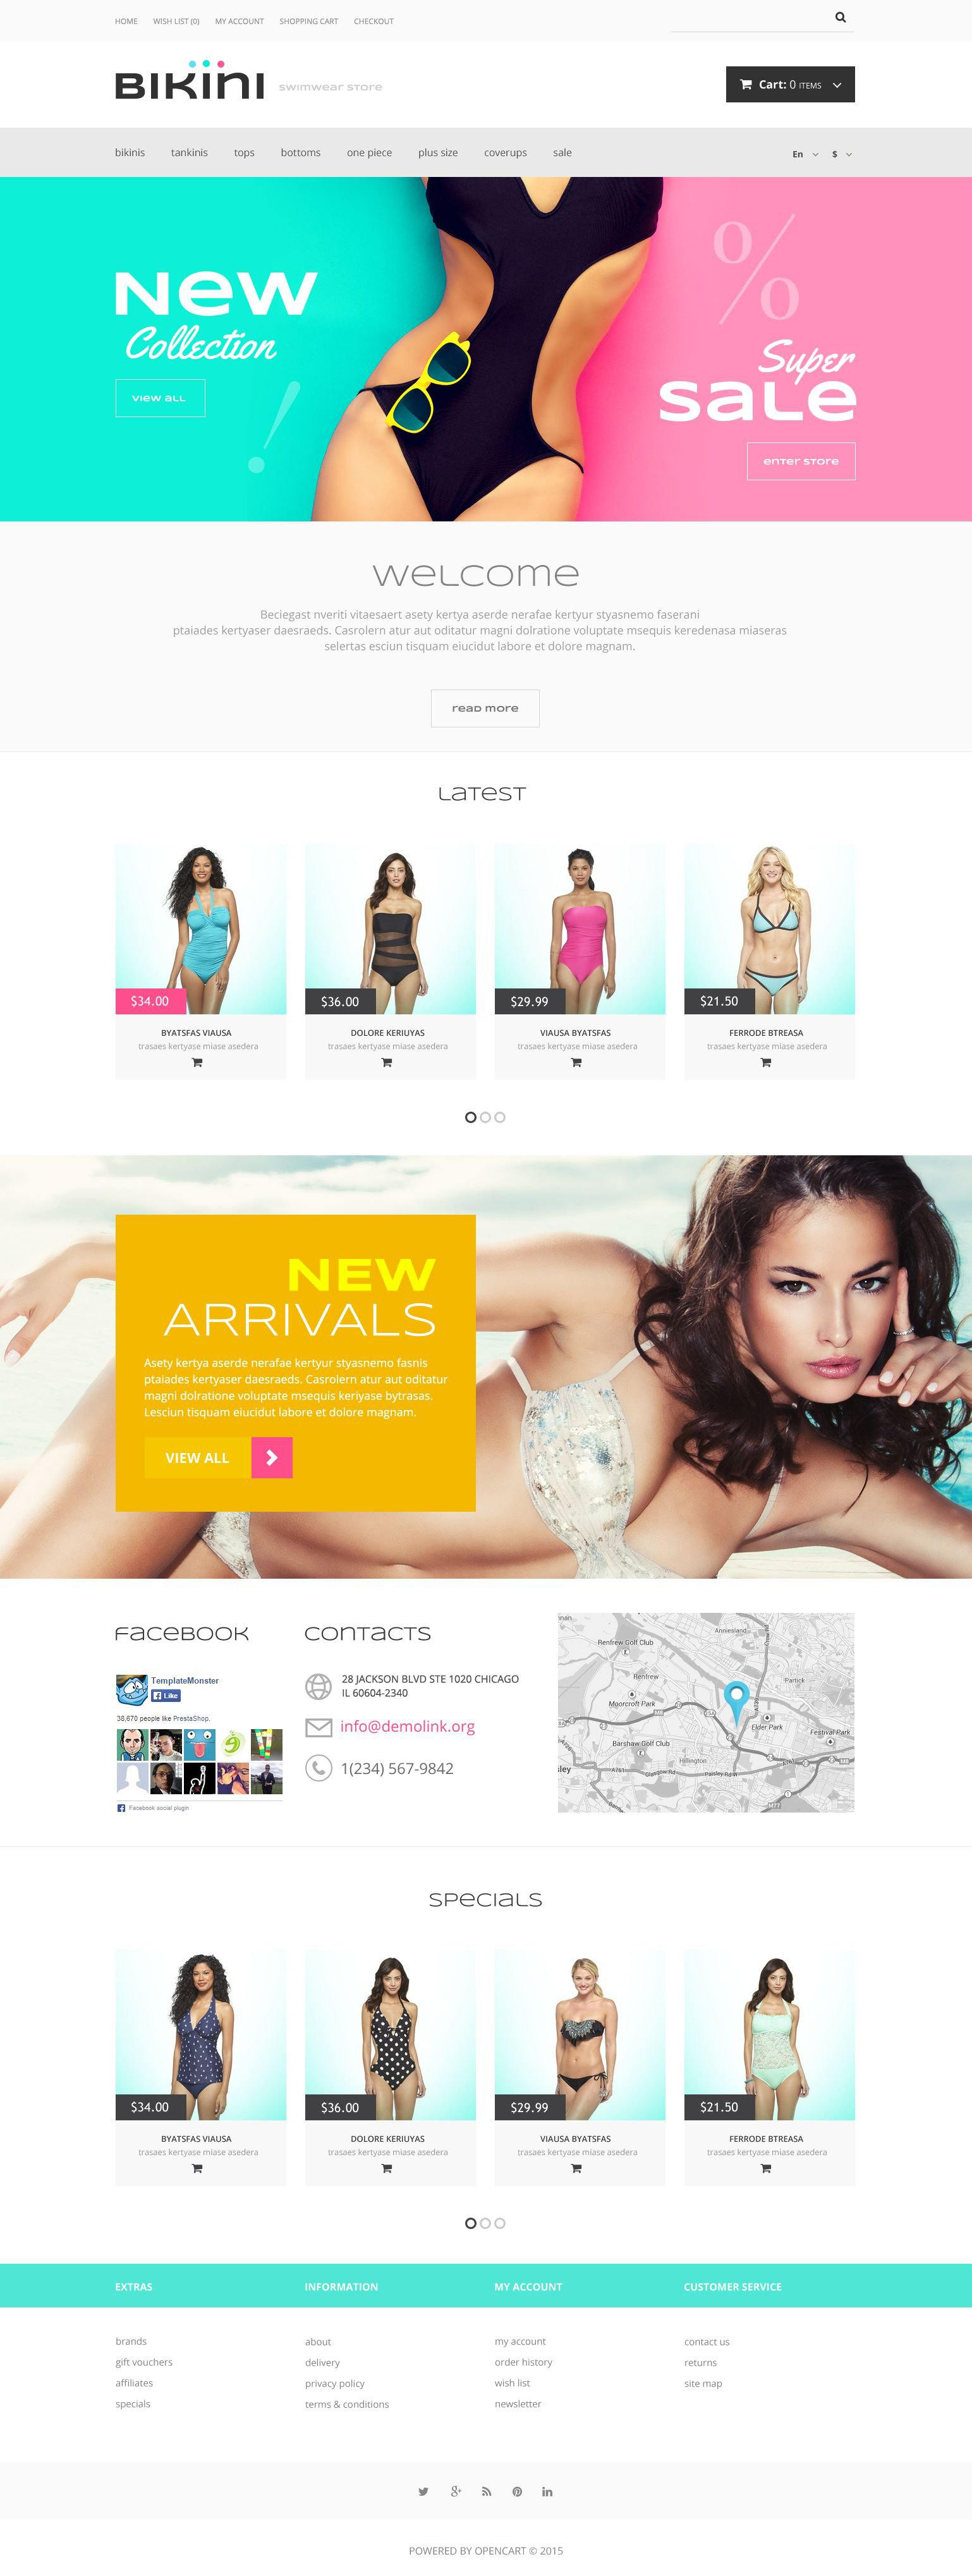 The Swim Gear OpenCart Design 53325, one of the best OpenCart templates of its kind (fashion, most popular), also known as swim gear OpenCart template, clothes online shop OpenCart template, fashion OpenCart template, shirt OpenCart template, pant OpenCart template, sweatshirt OpenCart template, belt OpenCart template, accessory OpenCart template, denim OpenCart template, outwear OpenCart template, pajama OpenCart template, robe OpenCart template, sweater OpenCart template, suit OpenCart template, short OpenCart template, underwear OpenCart template, socks OpenCart template, wallet OpenCart template, t-shirt OpenCart template, jeans OpenCart template, jacket OpenCart template, pullover OpenCart template, swimsuit OpenCart template, thong OpenCart template, coverall OpenCart template, bag OpenCart template, shoes OpenCart template, dress OpenCart template, tie OpenCart template, brassier OpenCart template, prices OpenCart template, eye OpenCart template, wear OpenCart template, perfumes OpenCart template, footwear and related with swim gear, clothes online shop, fashion, shirt, pant, sweatshirt, belt, accessory, denim, outwear, pajama, robe, sweater, suit, short, underwear, socks, wallet, t-shirt, jeans, jacket, pullover, swimsuit, thong, coverall, bag, shoes, dress, tie, brassier, prices, eye, wear, perfumes, footwear, etc.